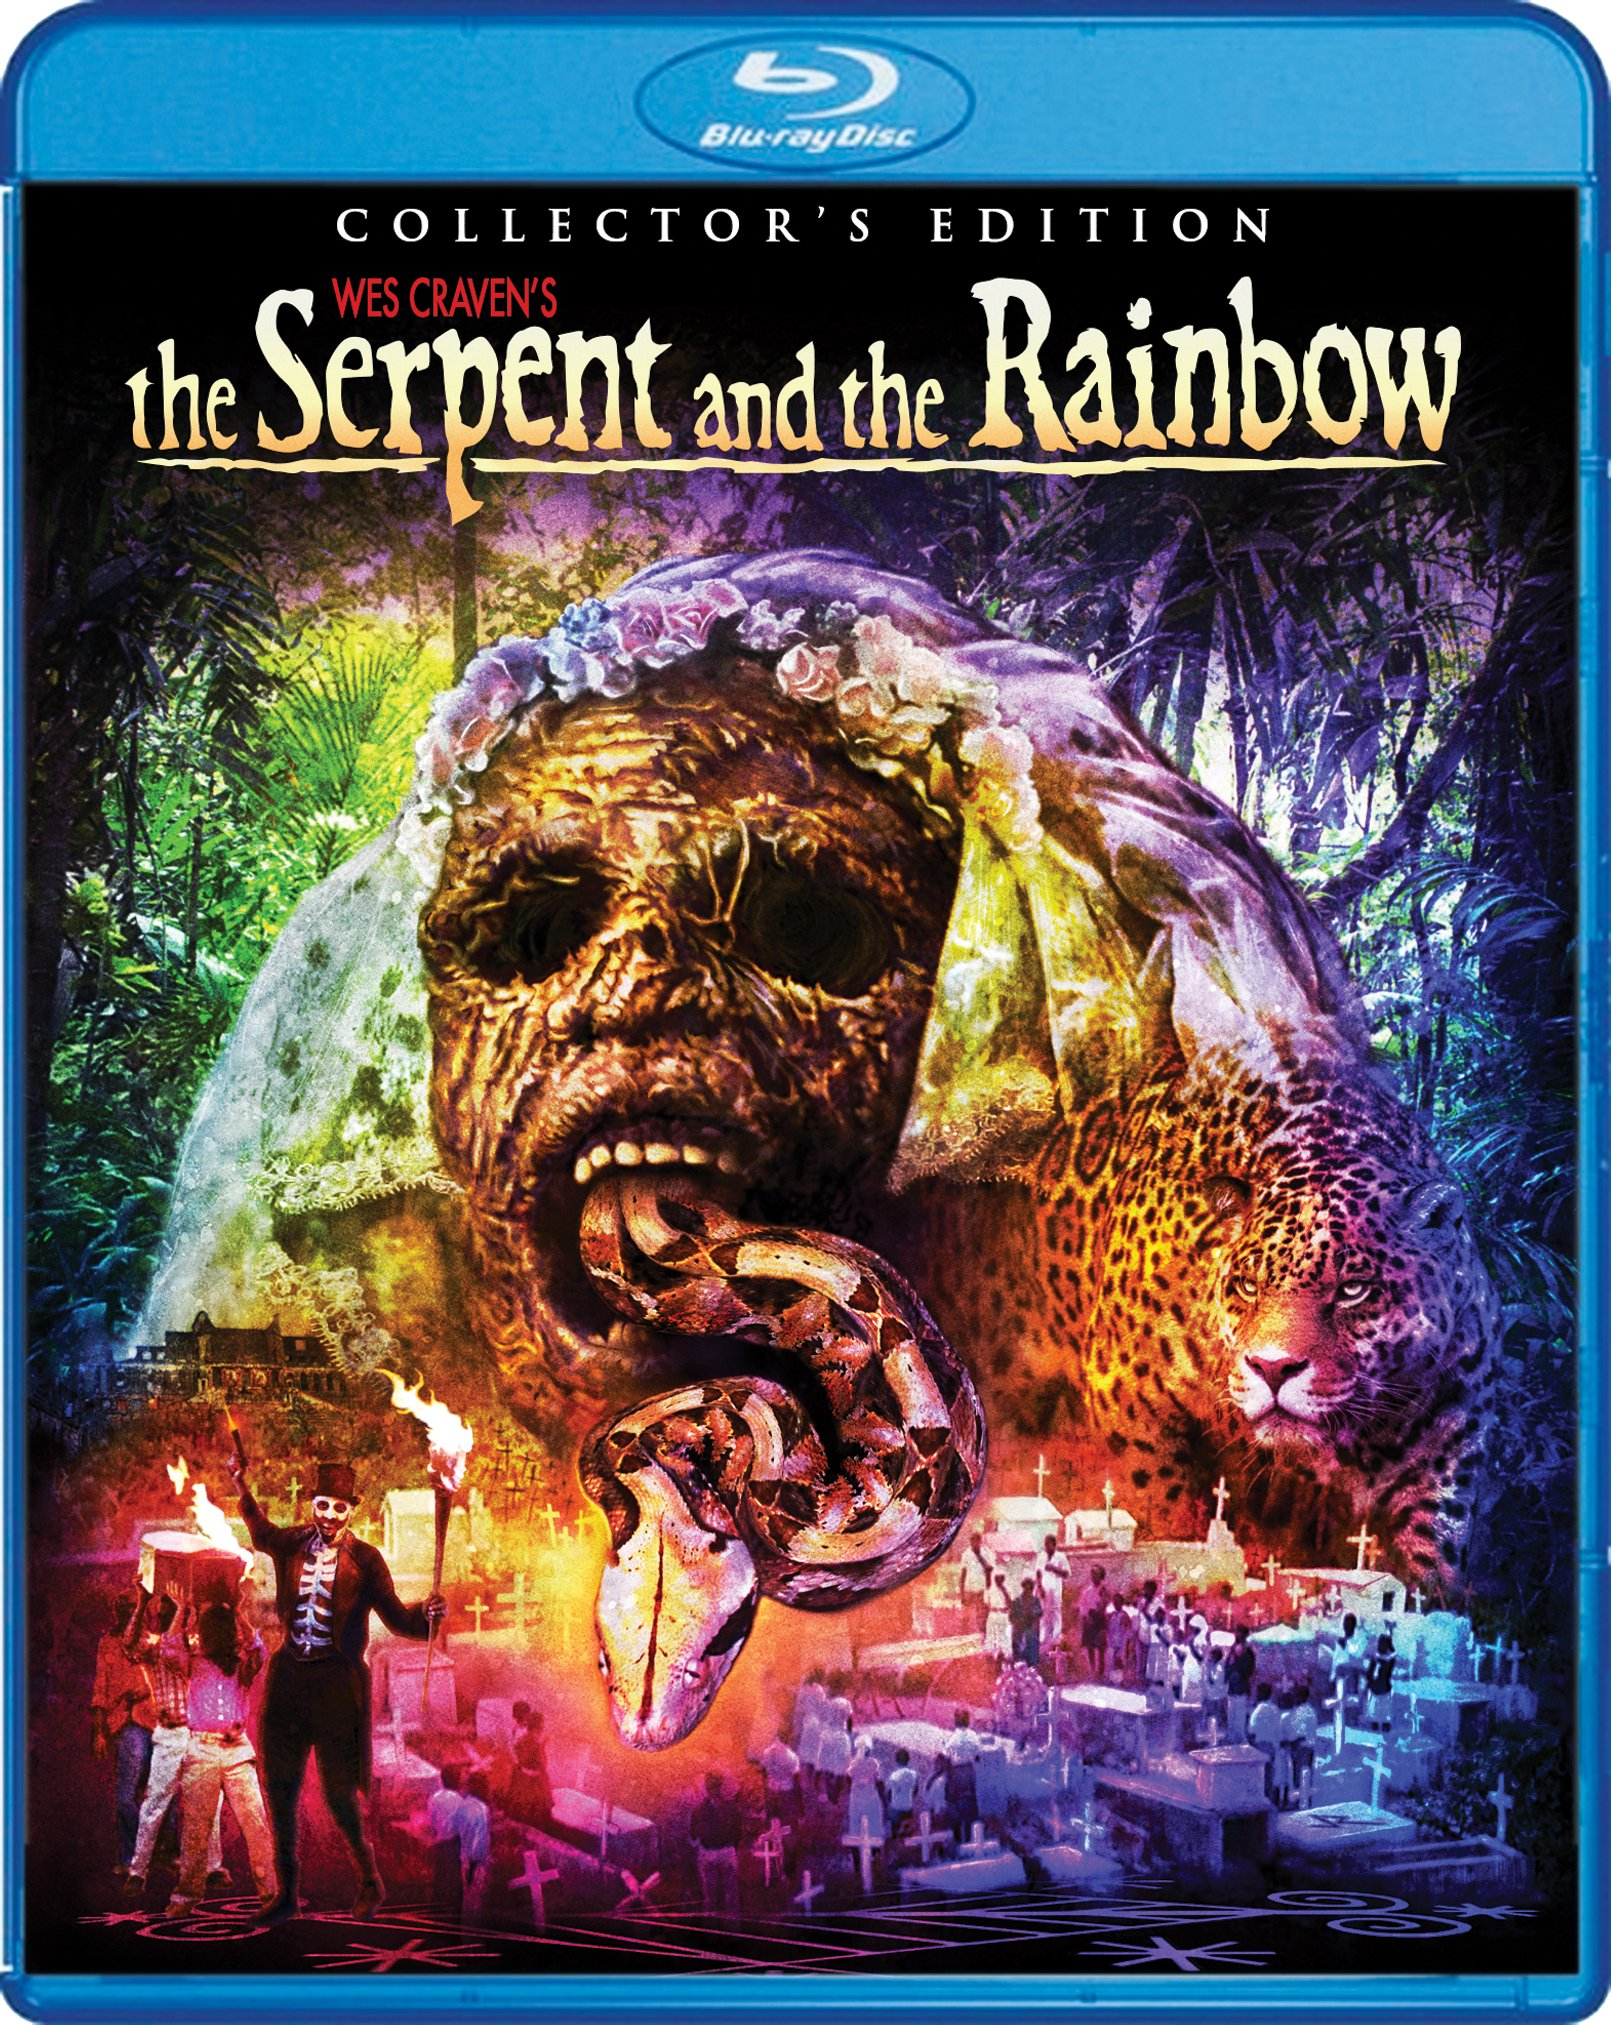 Blu-ray : The Serpent and the Rainbow (Collector's Edition, Widescreen)